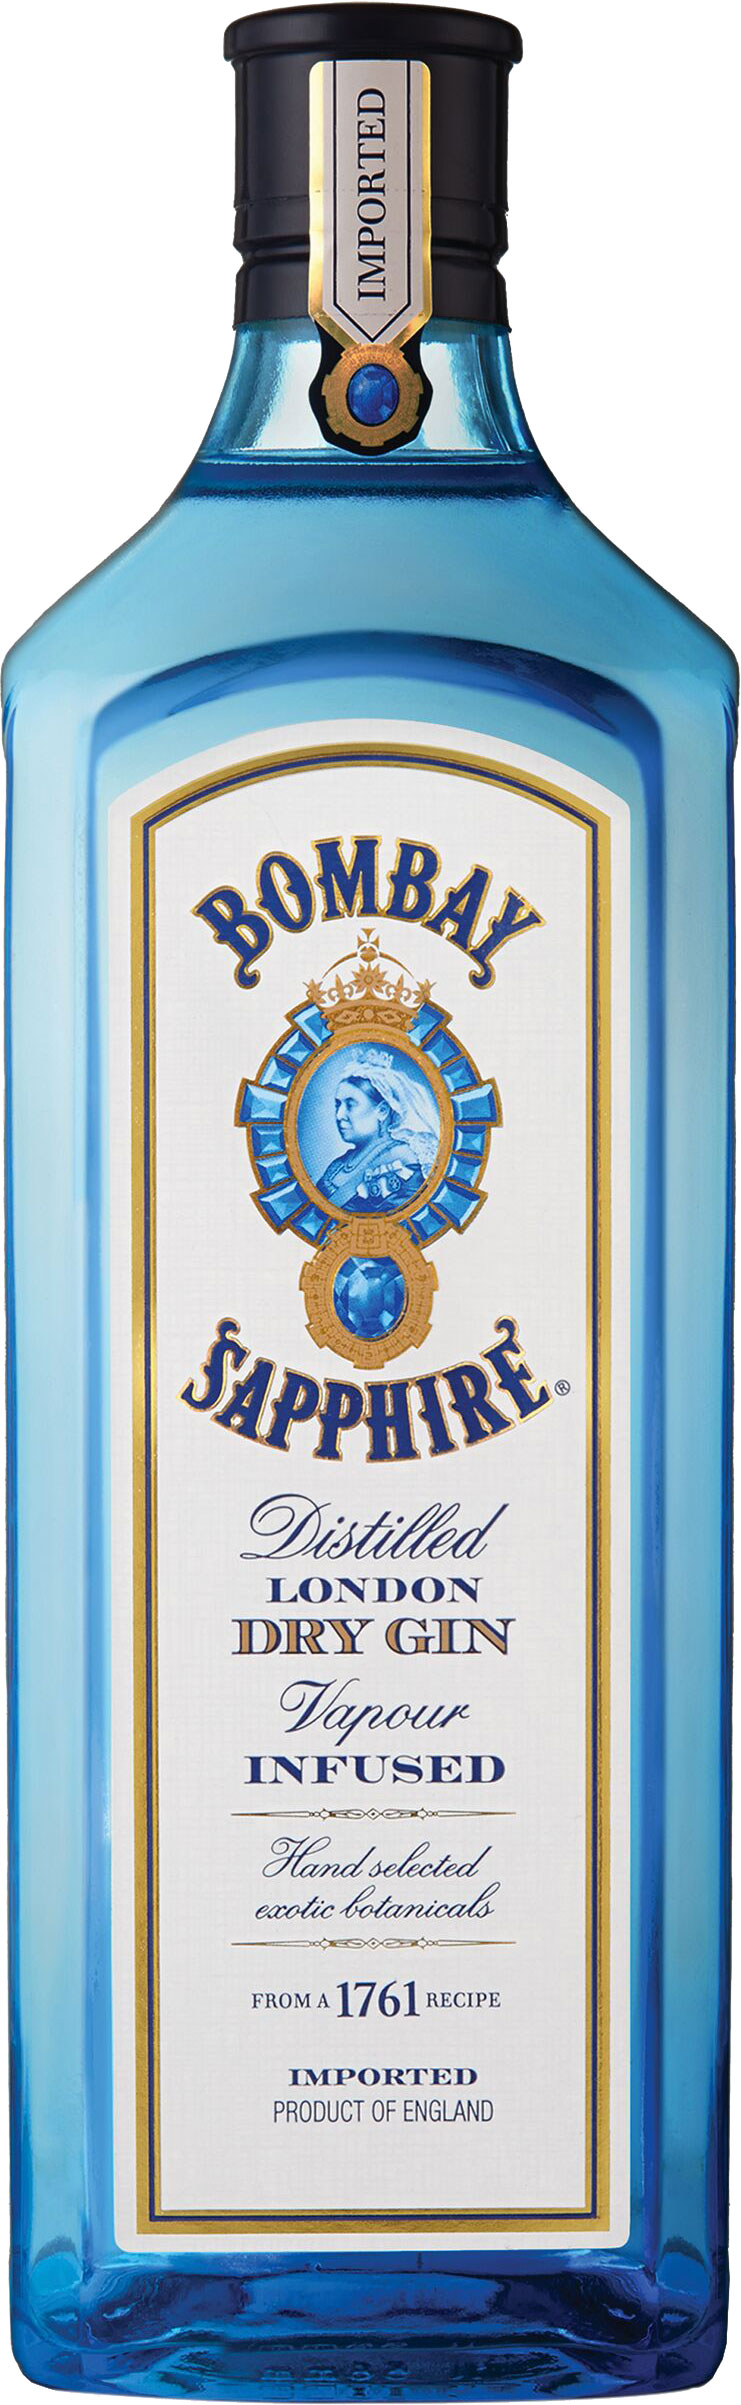 Bombay Sapphire - Gin 70cl Bottle